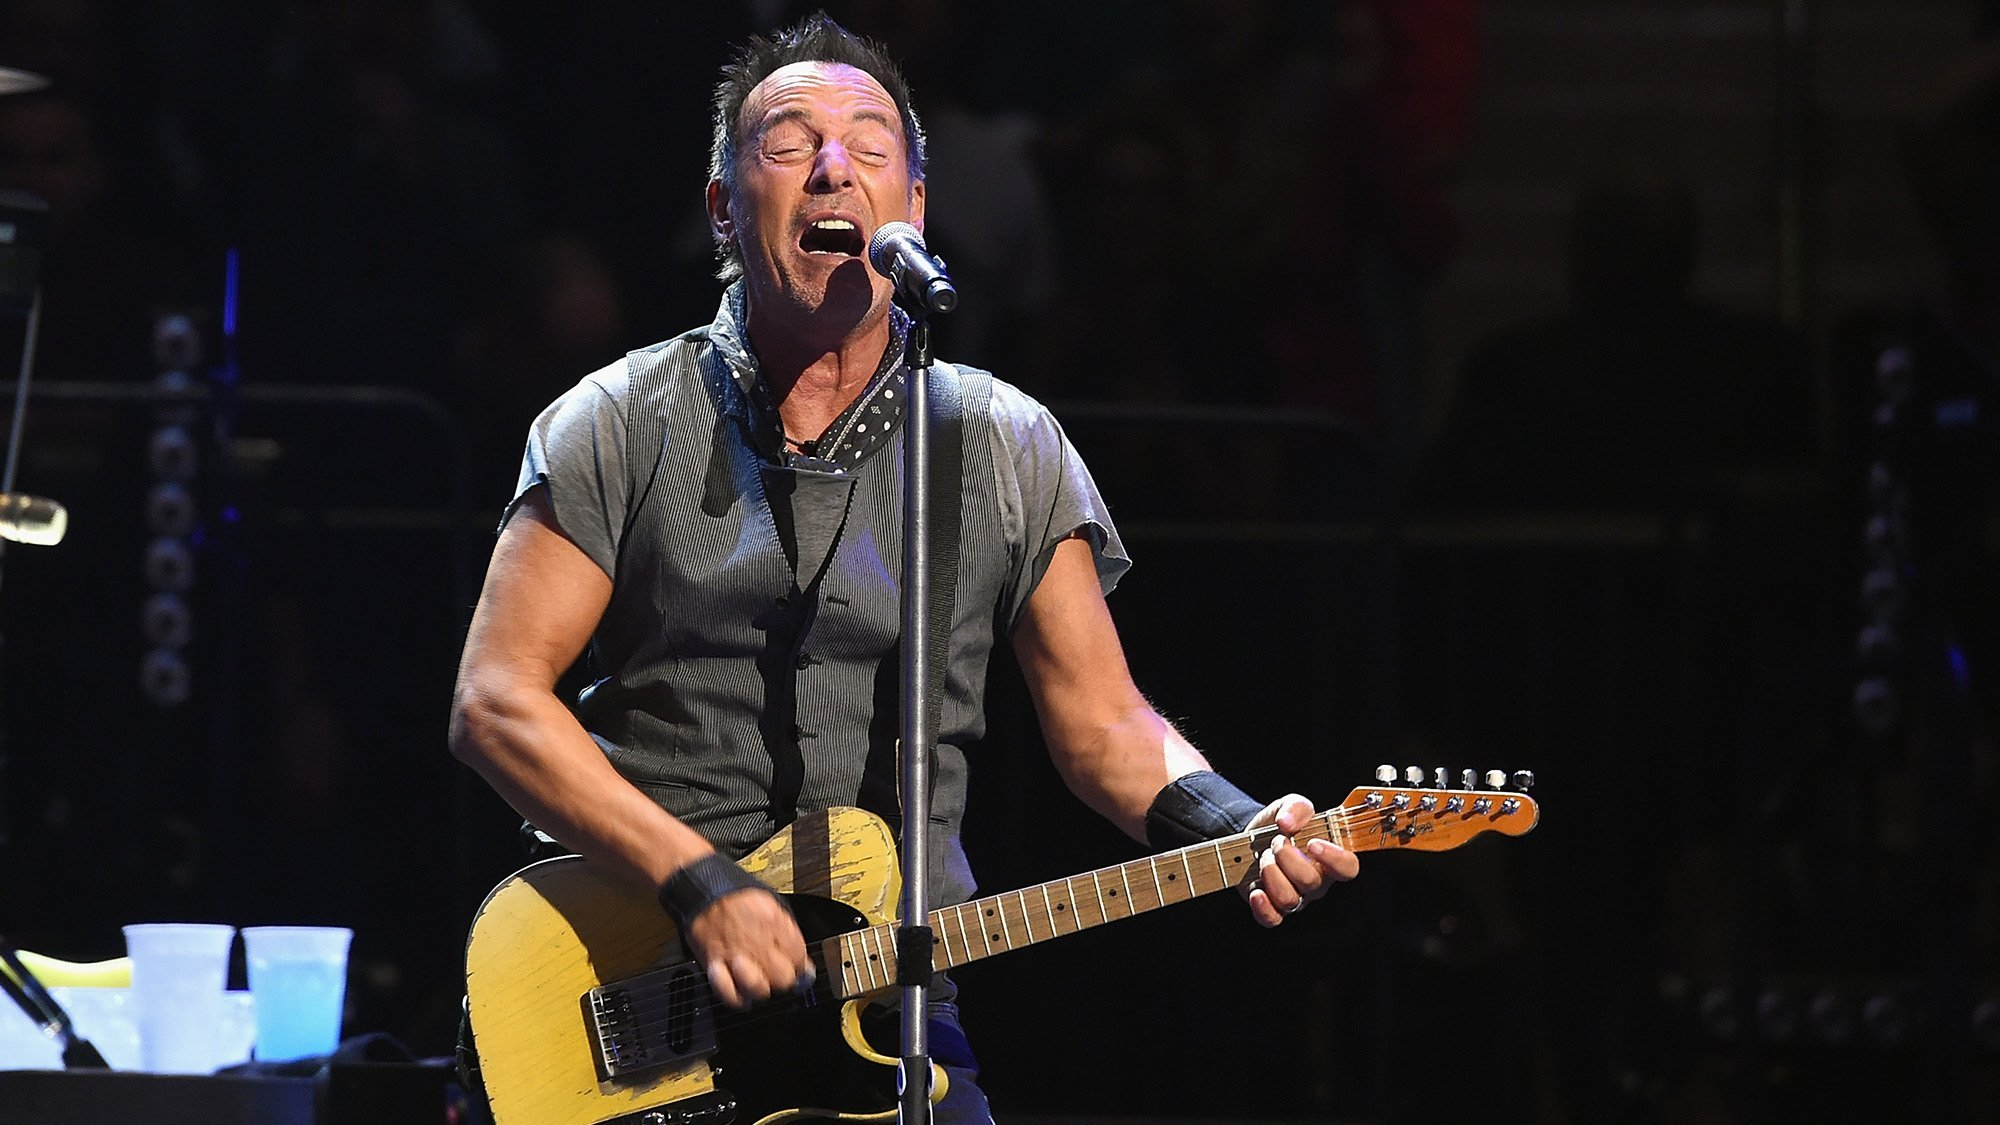 He's never had a No. 1 hit. But he's the most honored American rock star ever